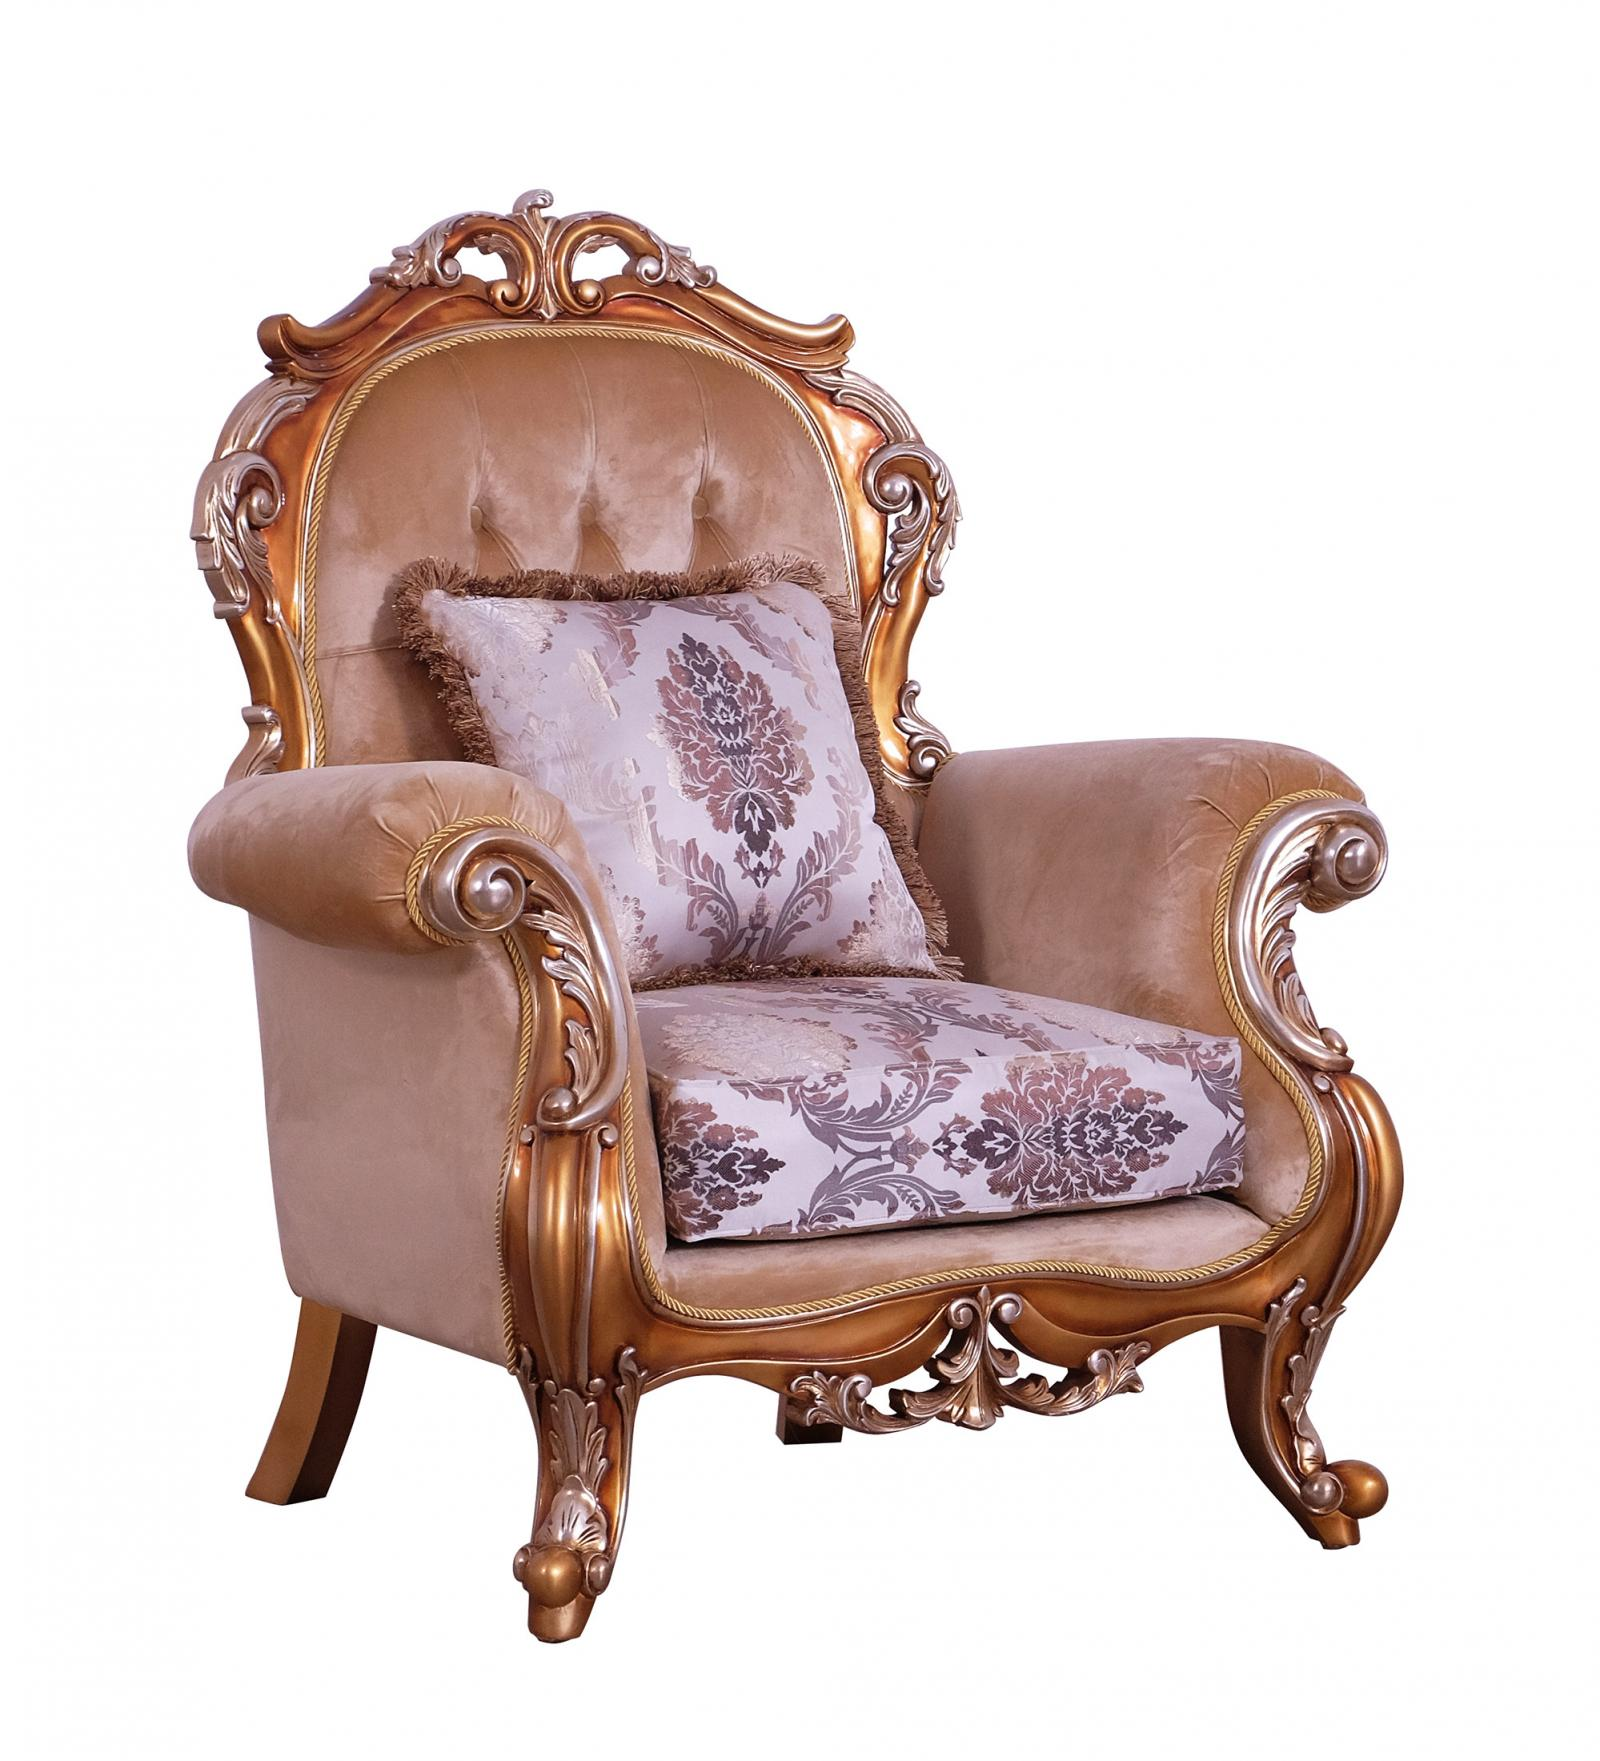 Classic  Traditional Gold  Silver  Antique   Black Wood  Solid Hardwood and Fabric Arm Chair EUROPEAN FURNITURE 38996-C